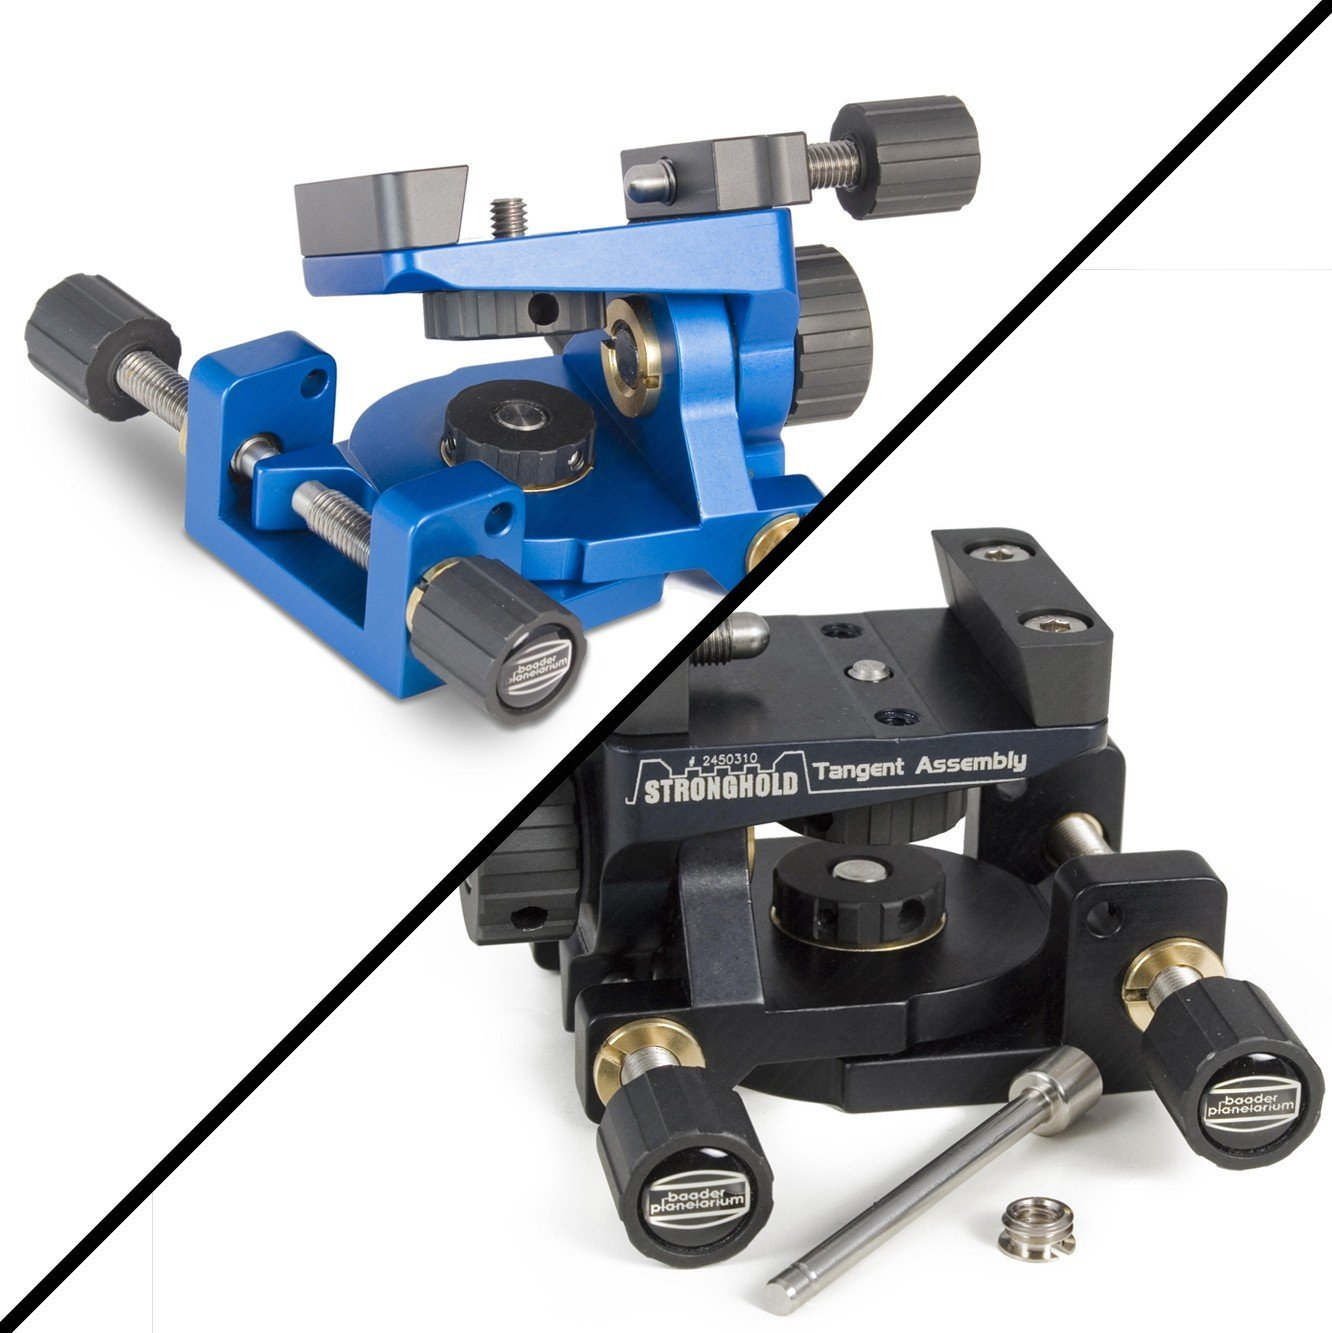 Baader Stronghold Tangent Assembly in blue and black